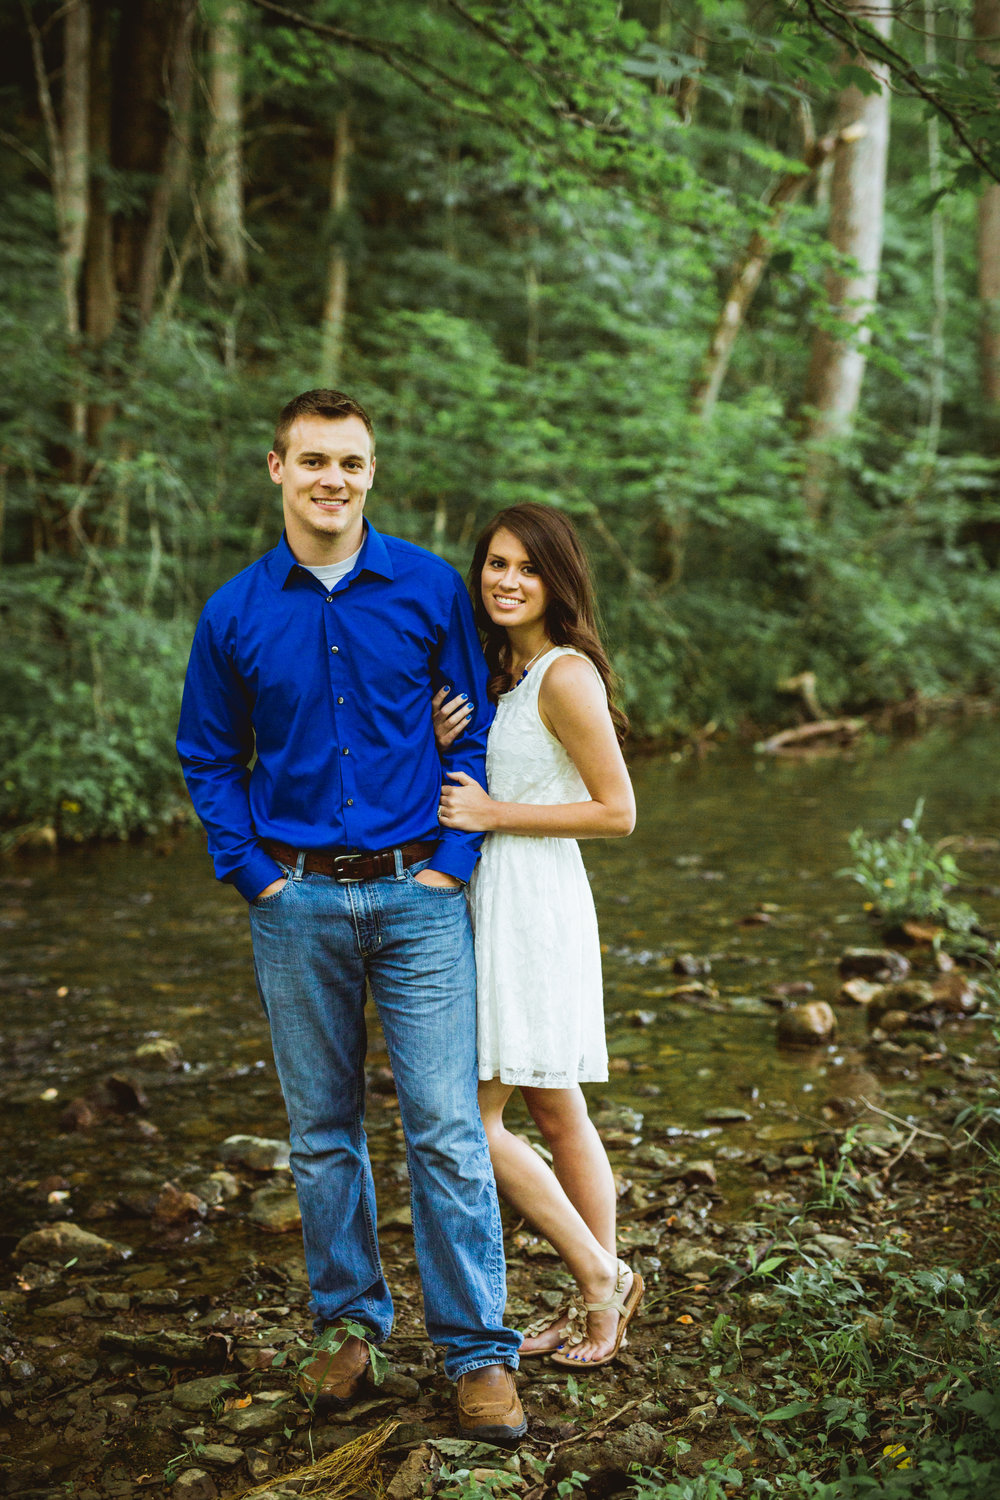 Todd-Hunt Engagement-53.jpg